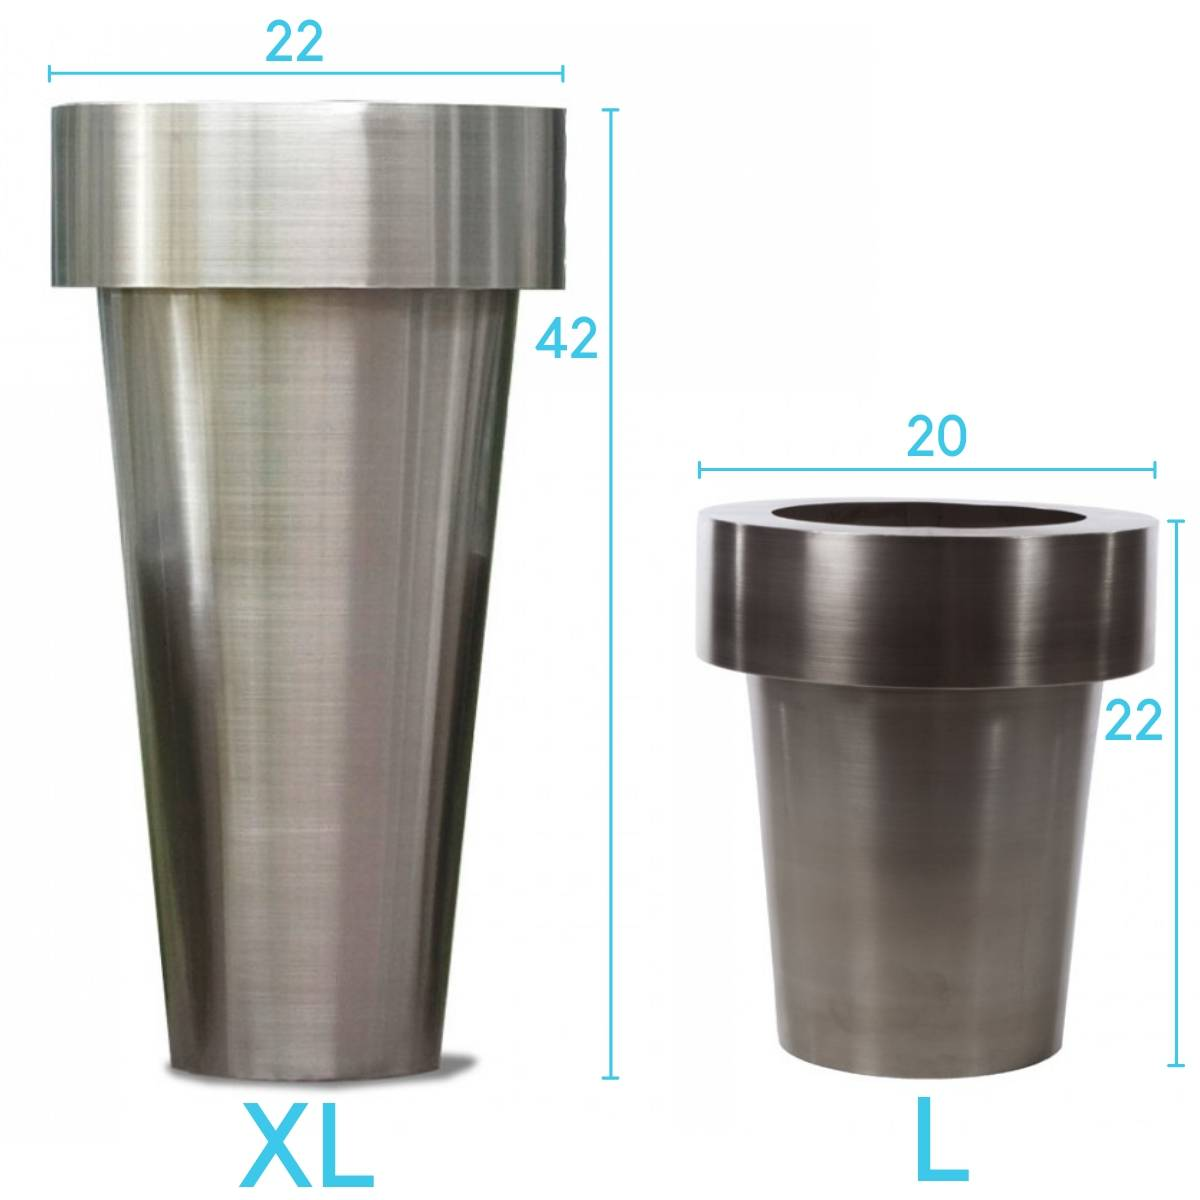 Size variance of Stainless Steel Planters